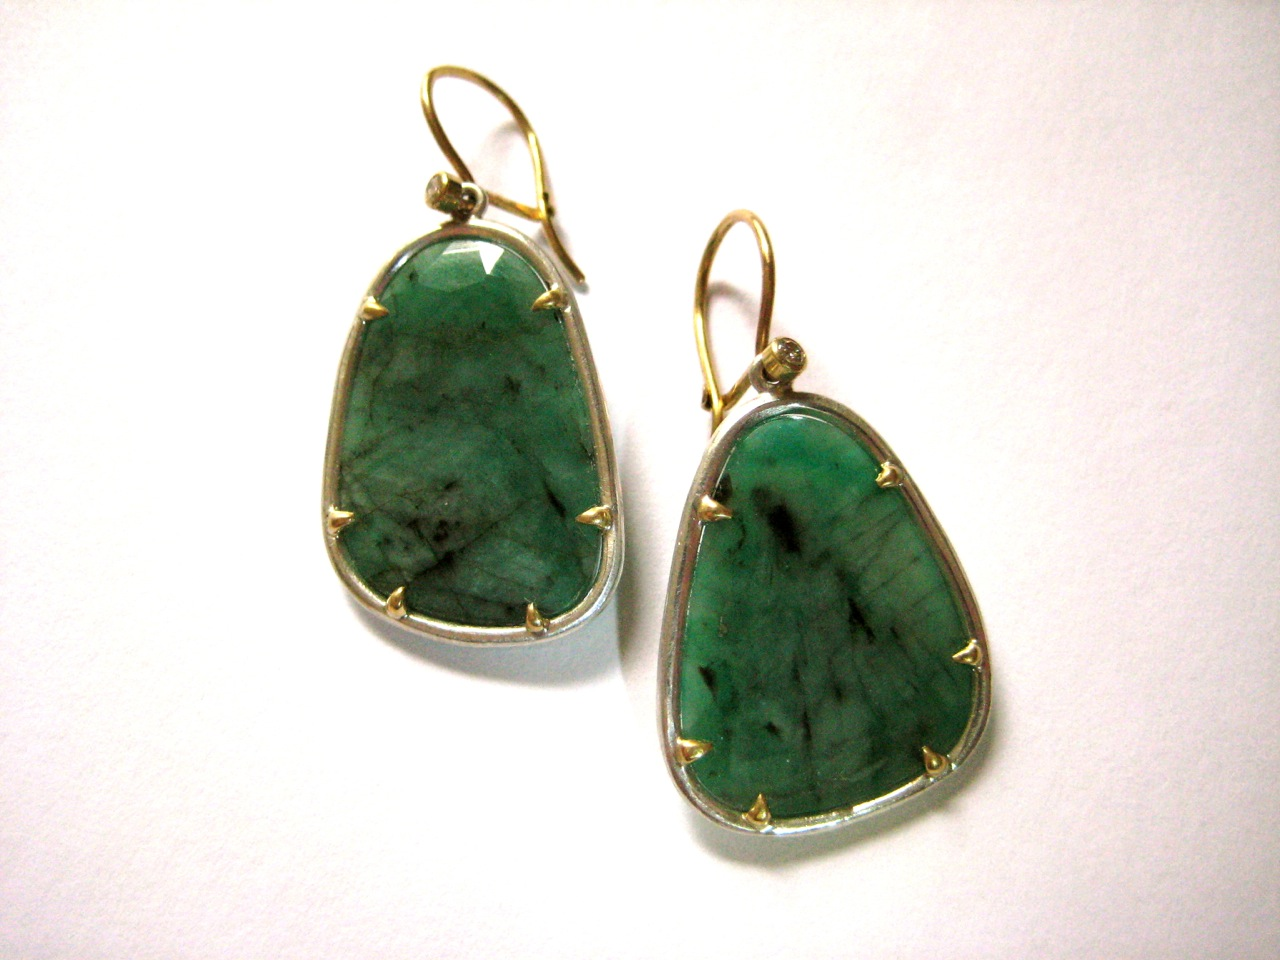 Emerald Slice Earrings with diamonds